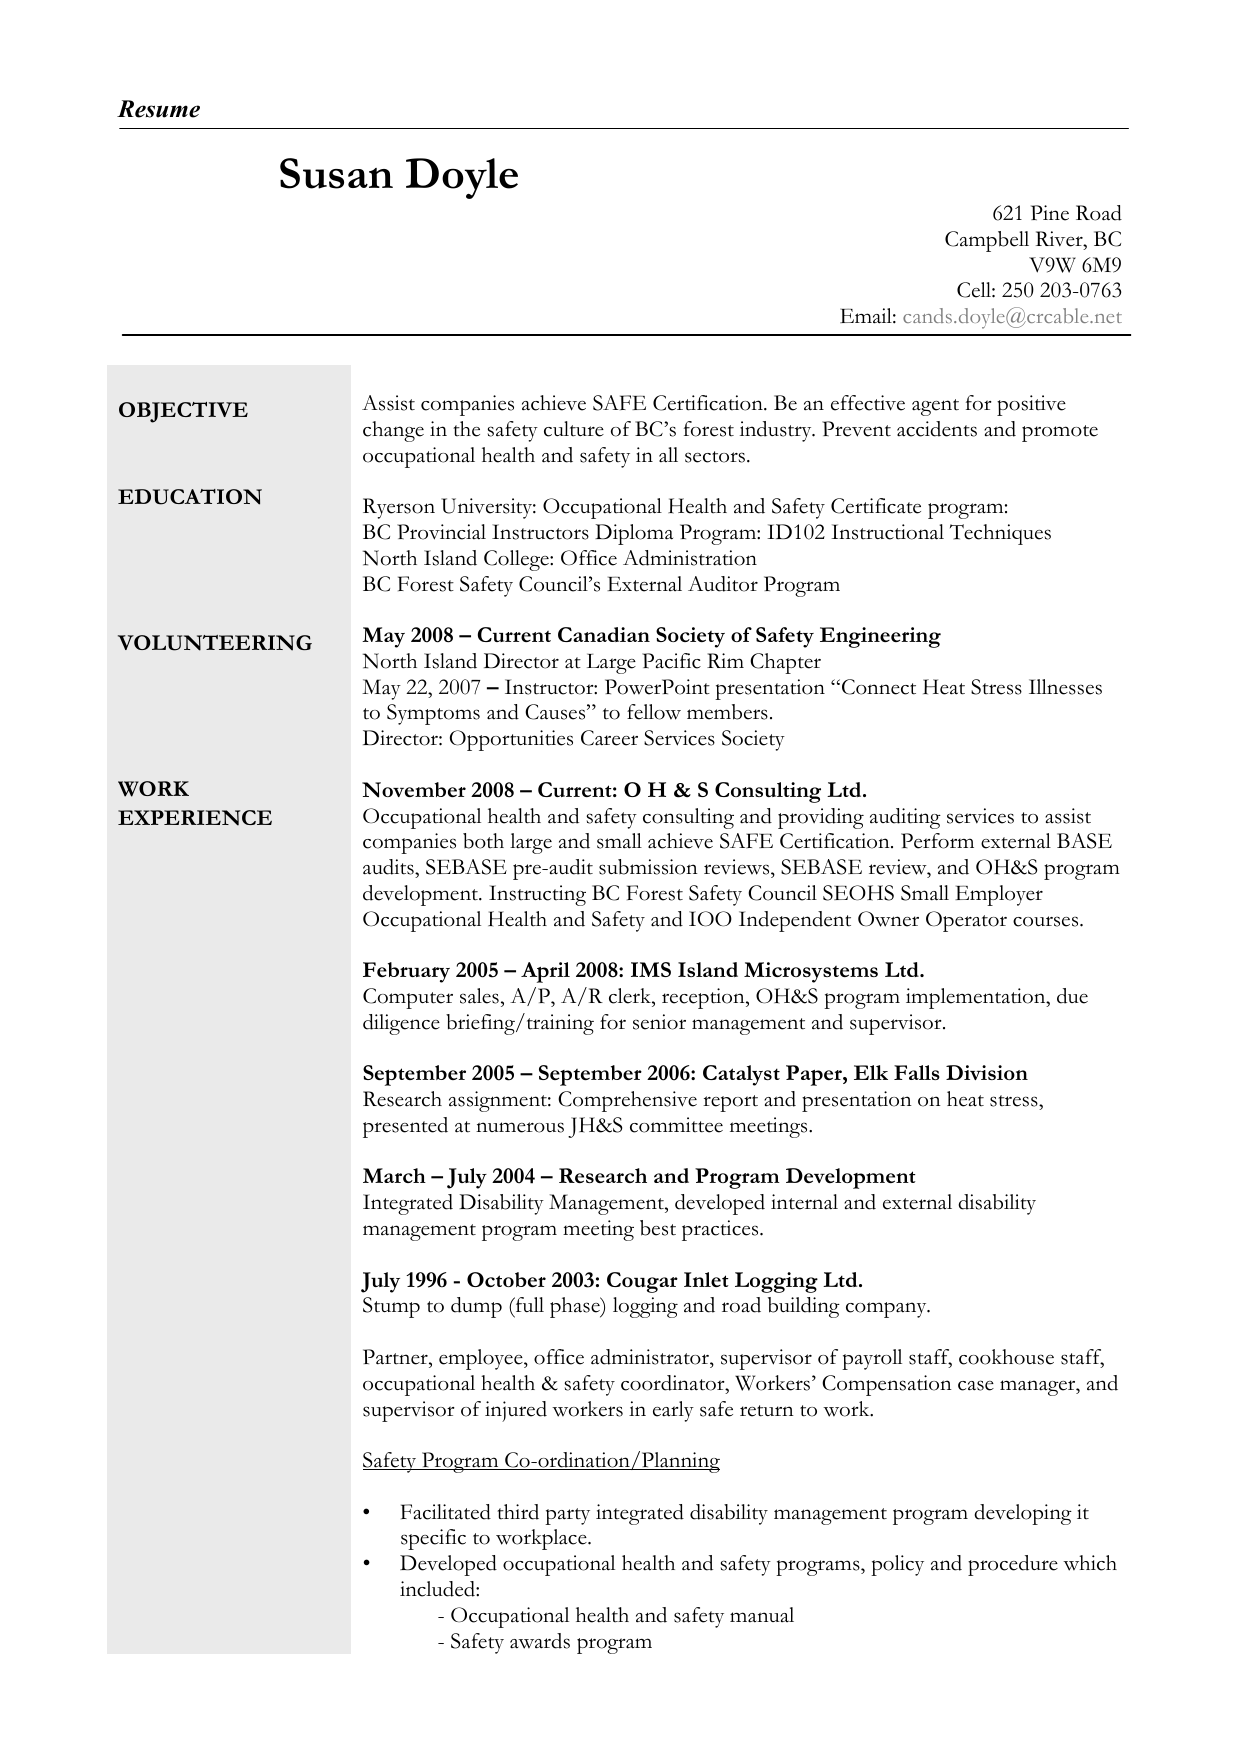 Curriculum Vitae - BC Forest Safety Council